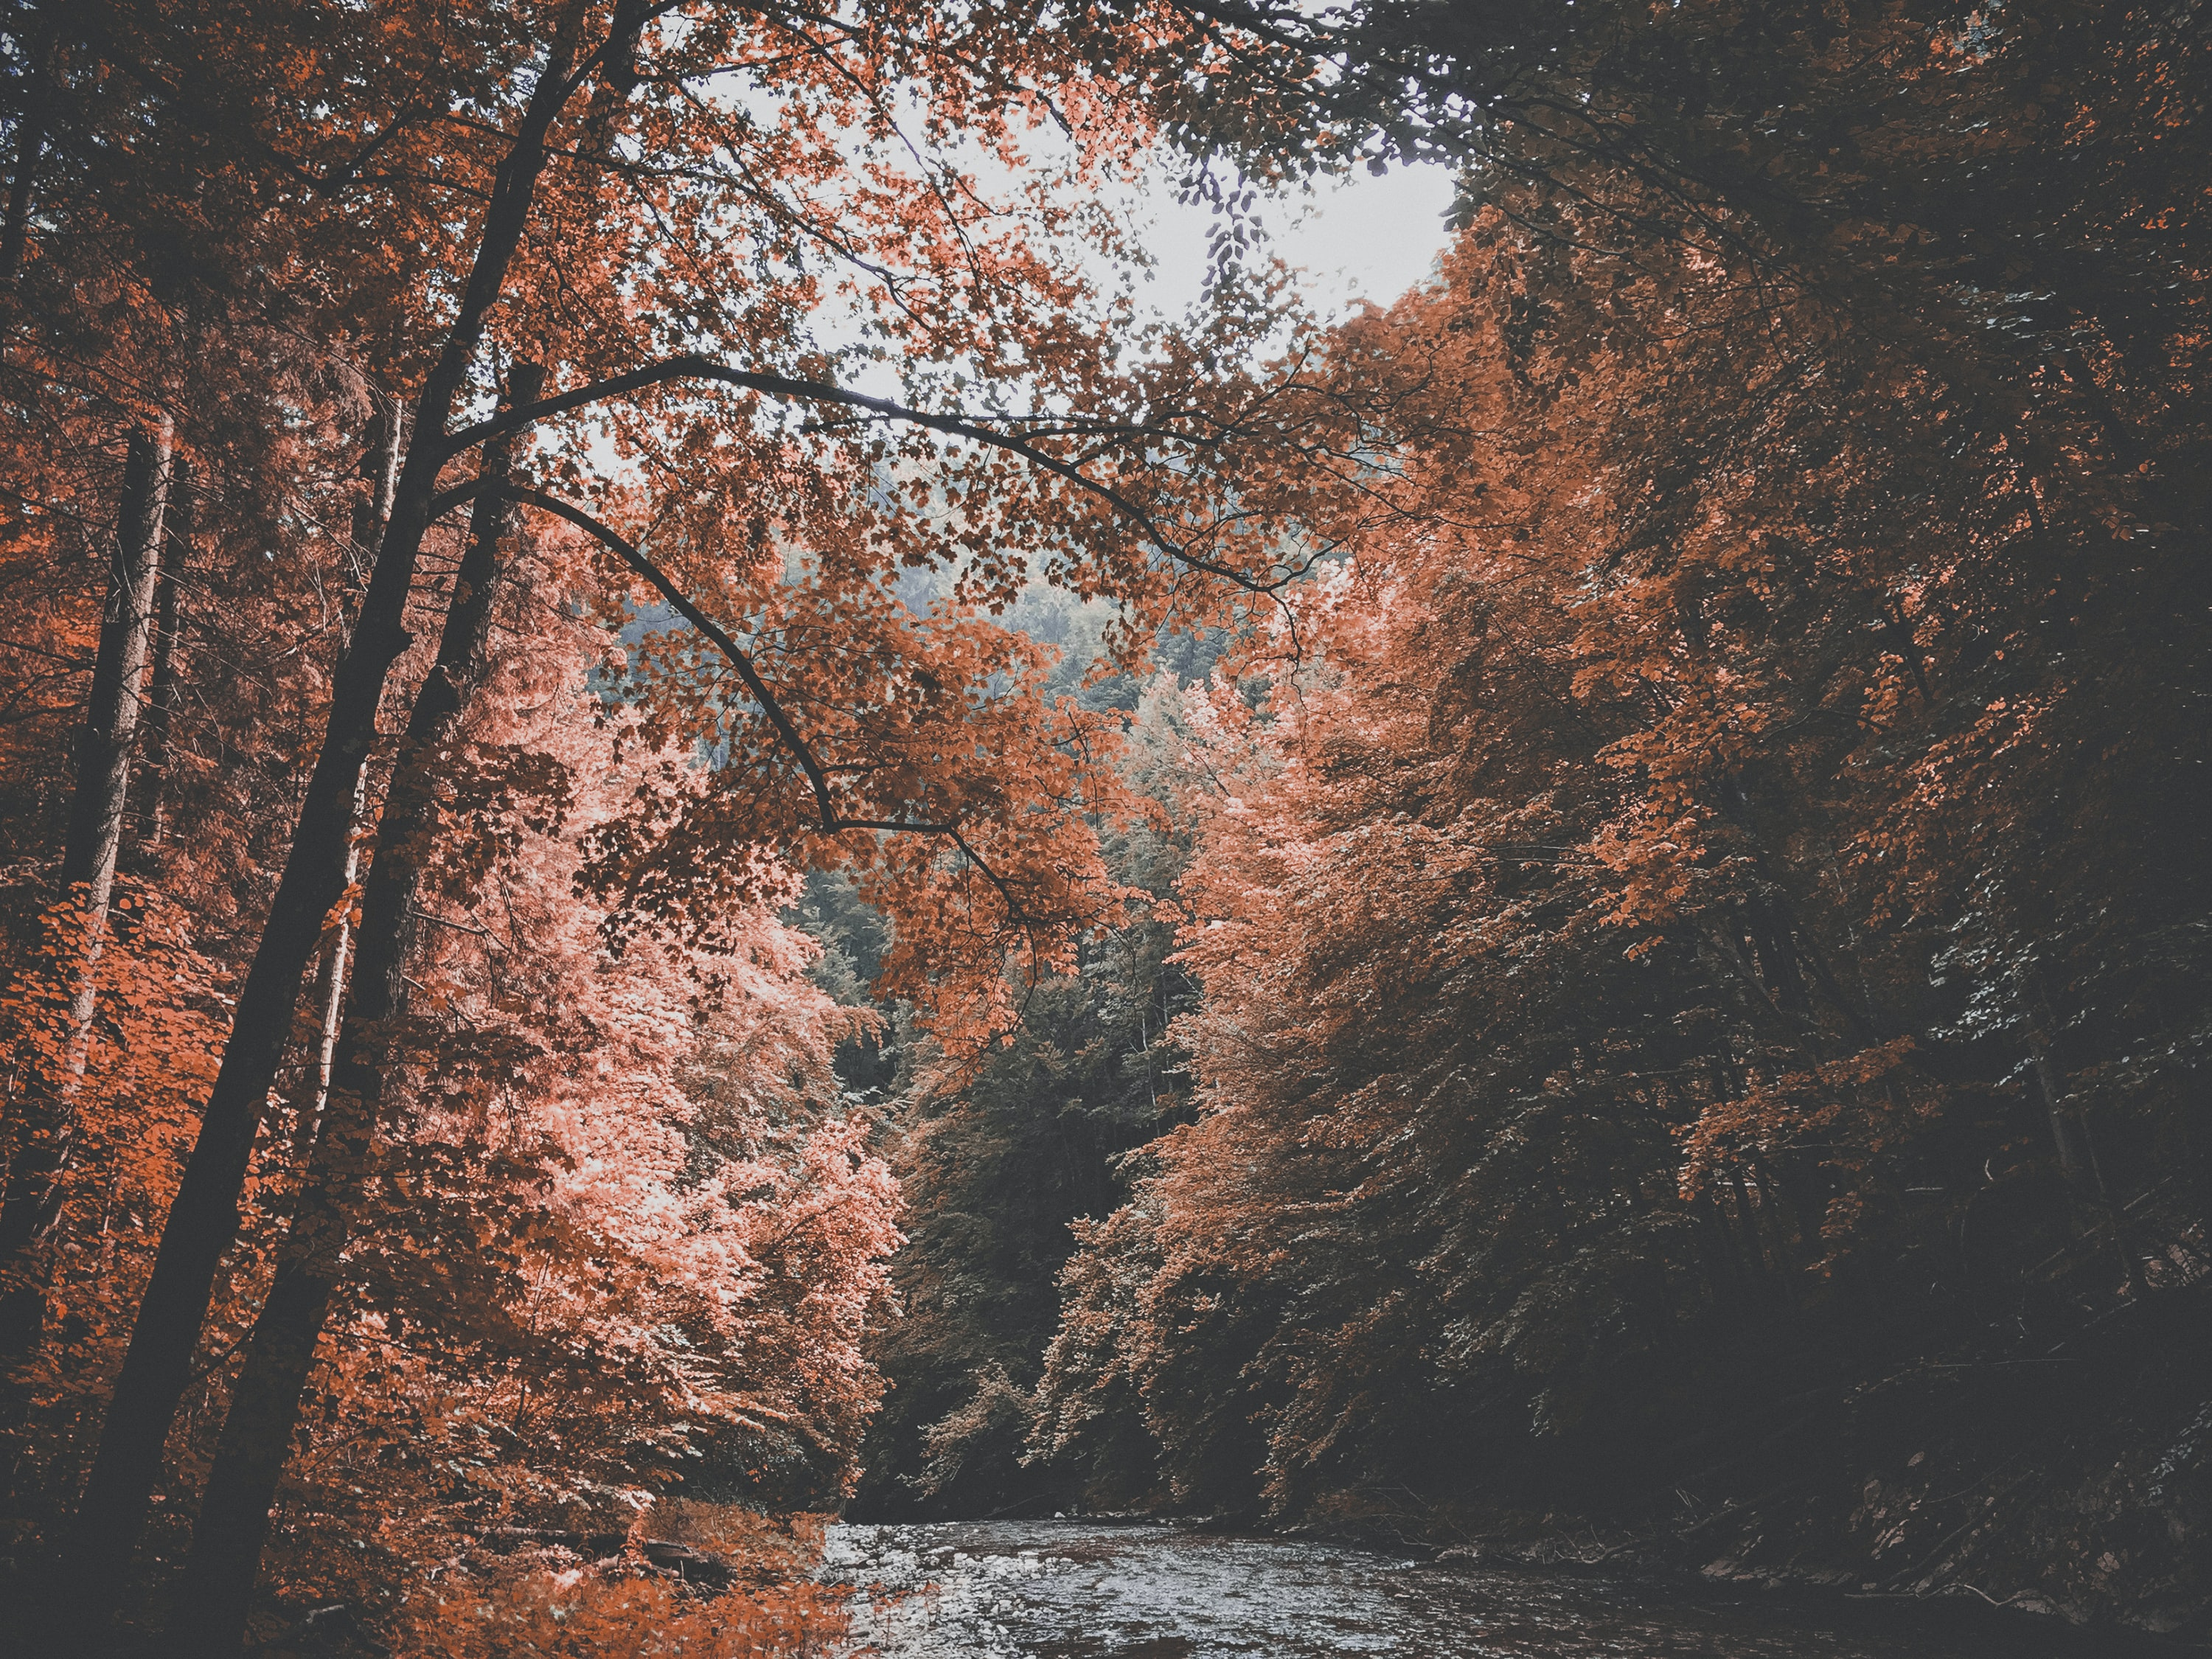 Red autumn leaves on trees over a fast-flowing stream